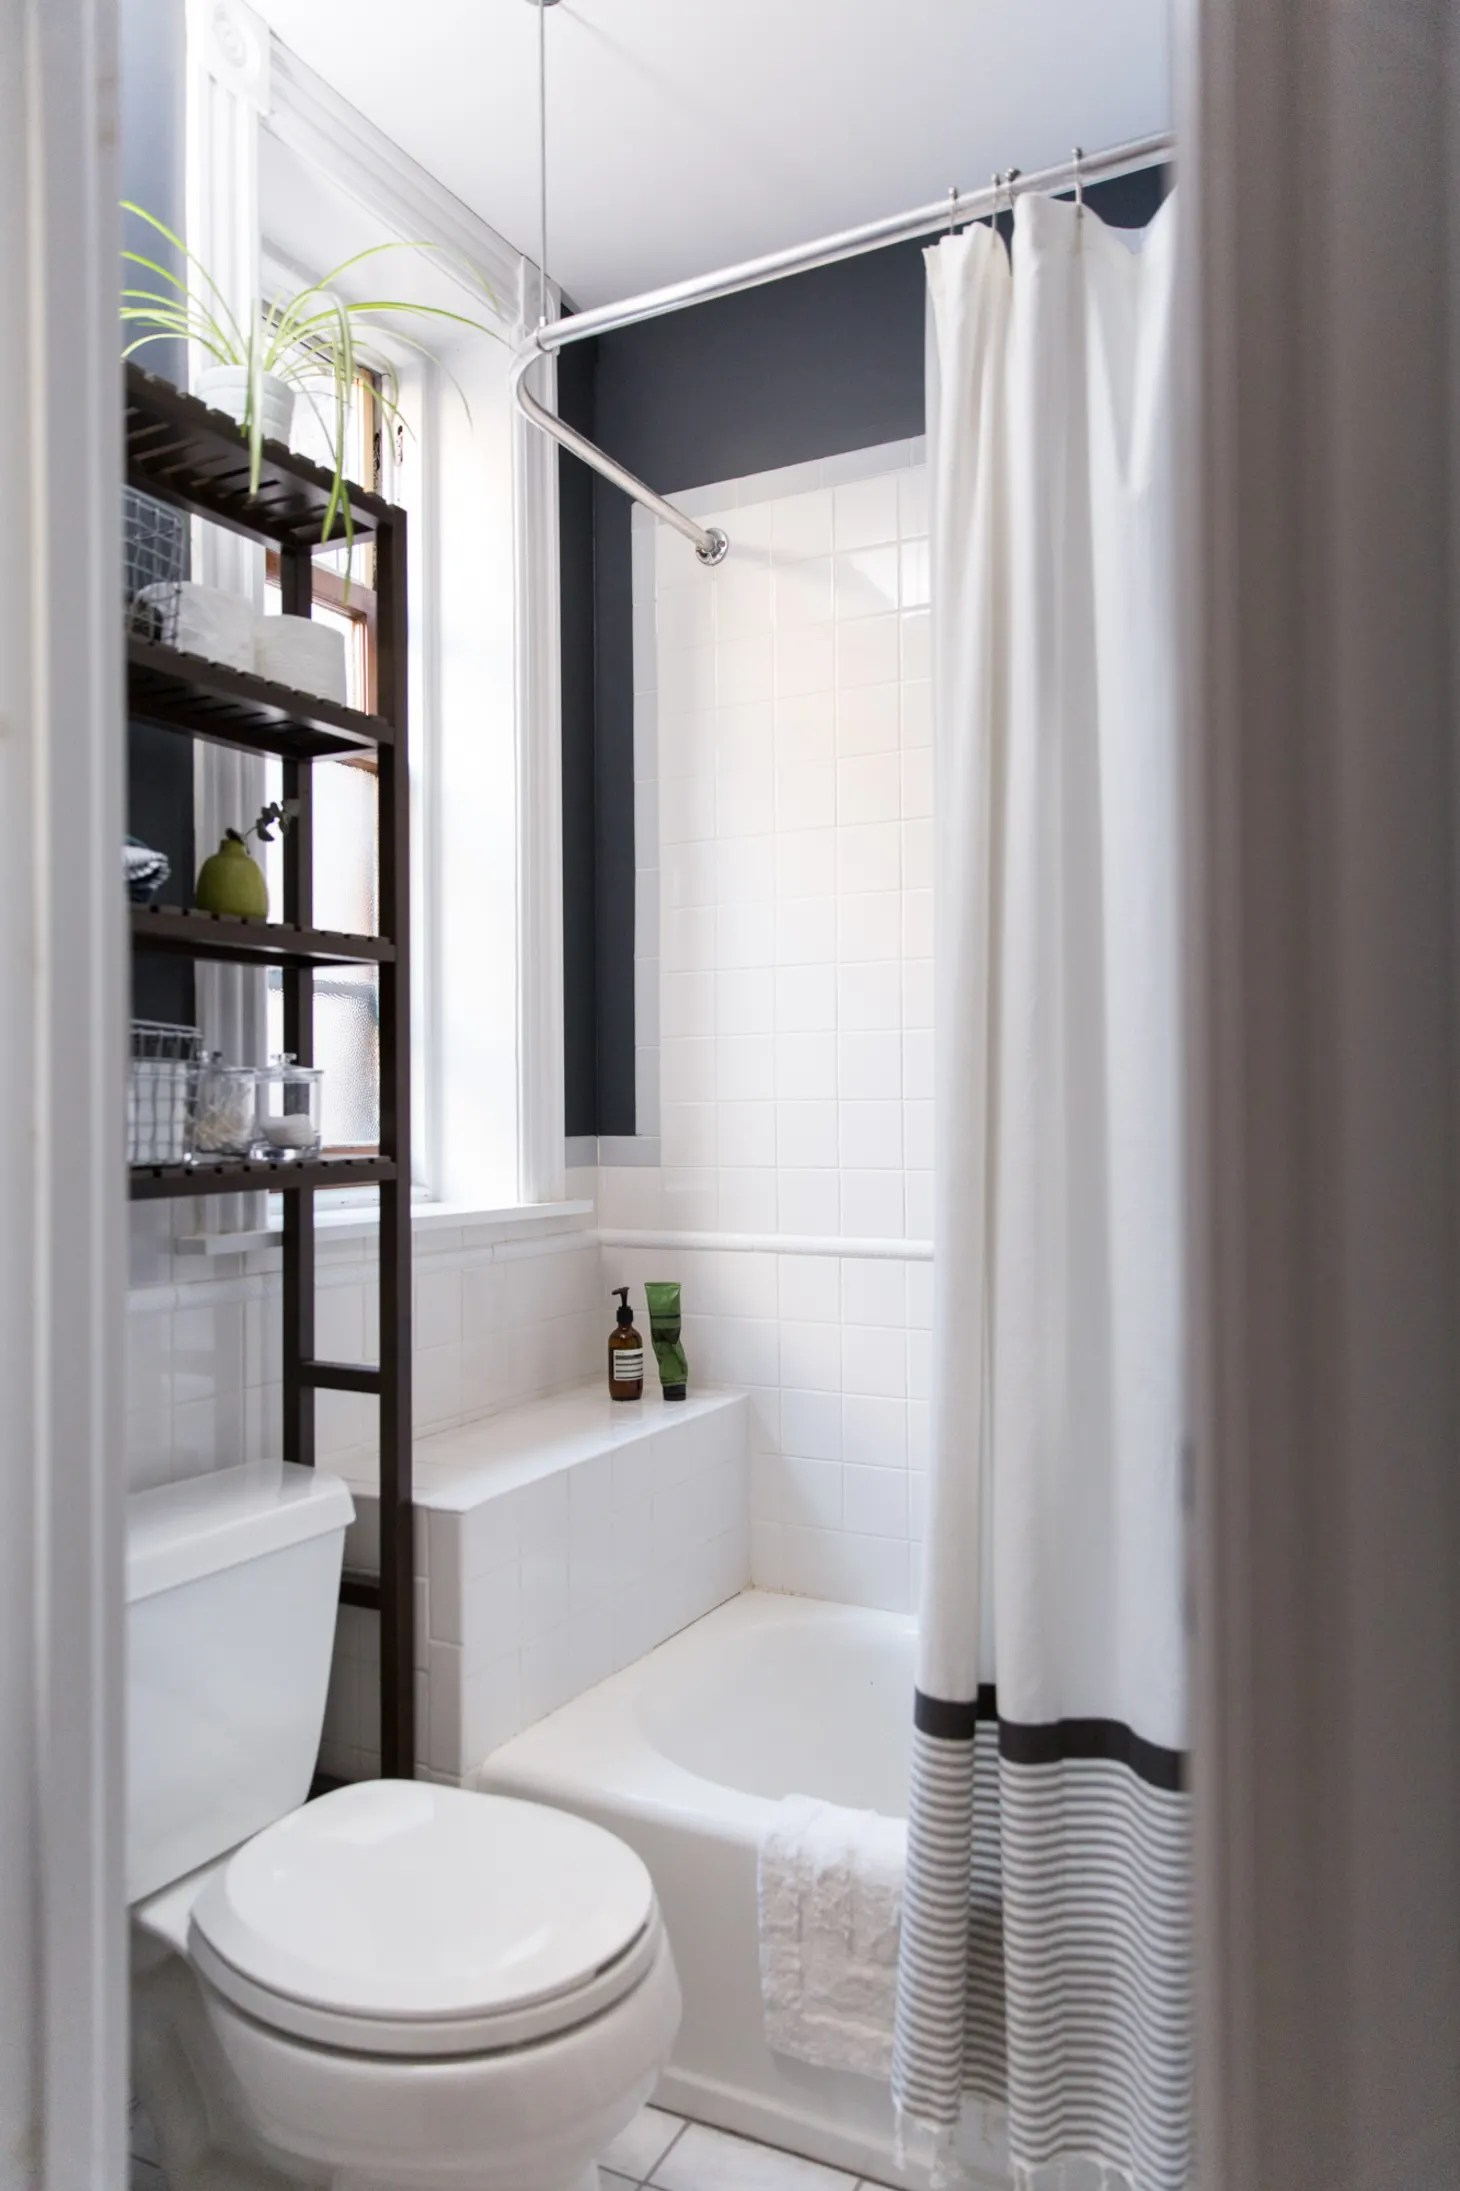 Best Paint Colors for Small Bathrooms   Apartment Therapy on Small Apartment Bathroom  id=25068